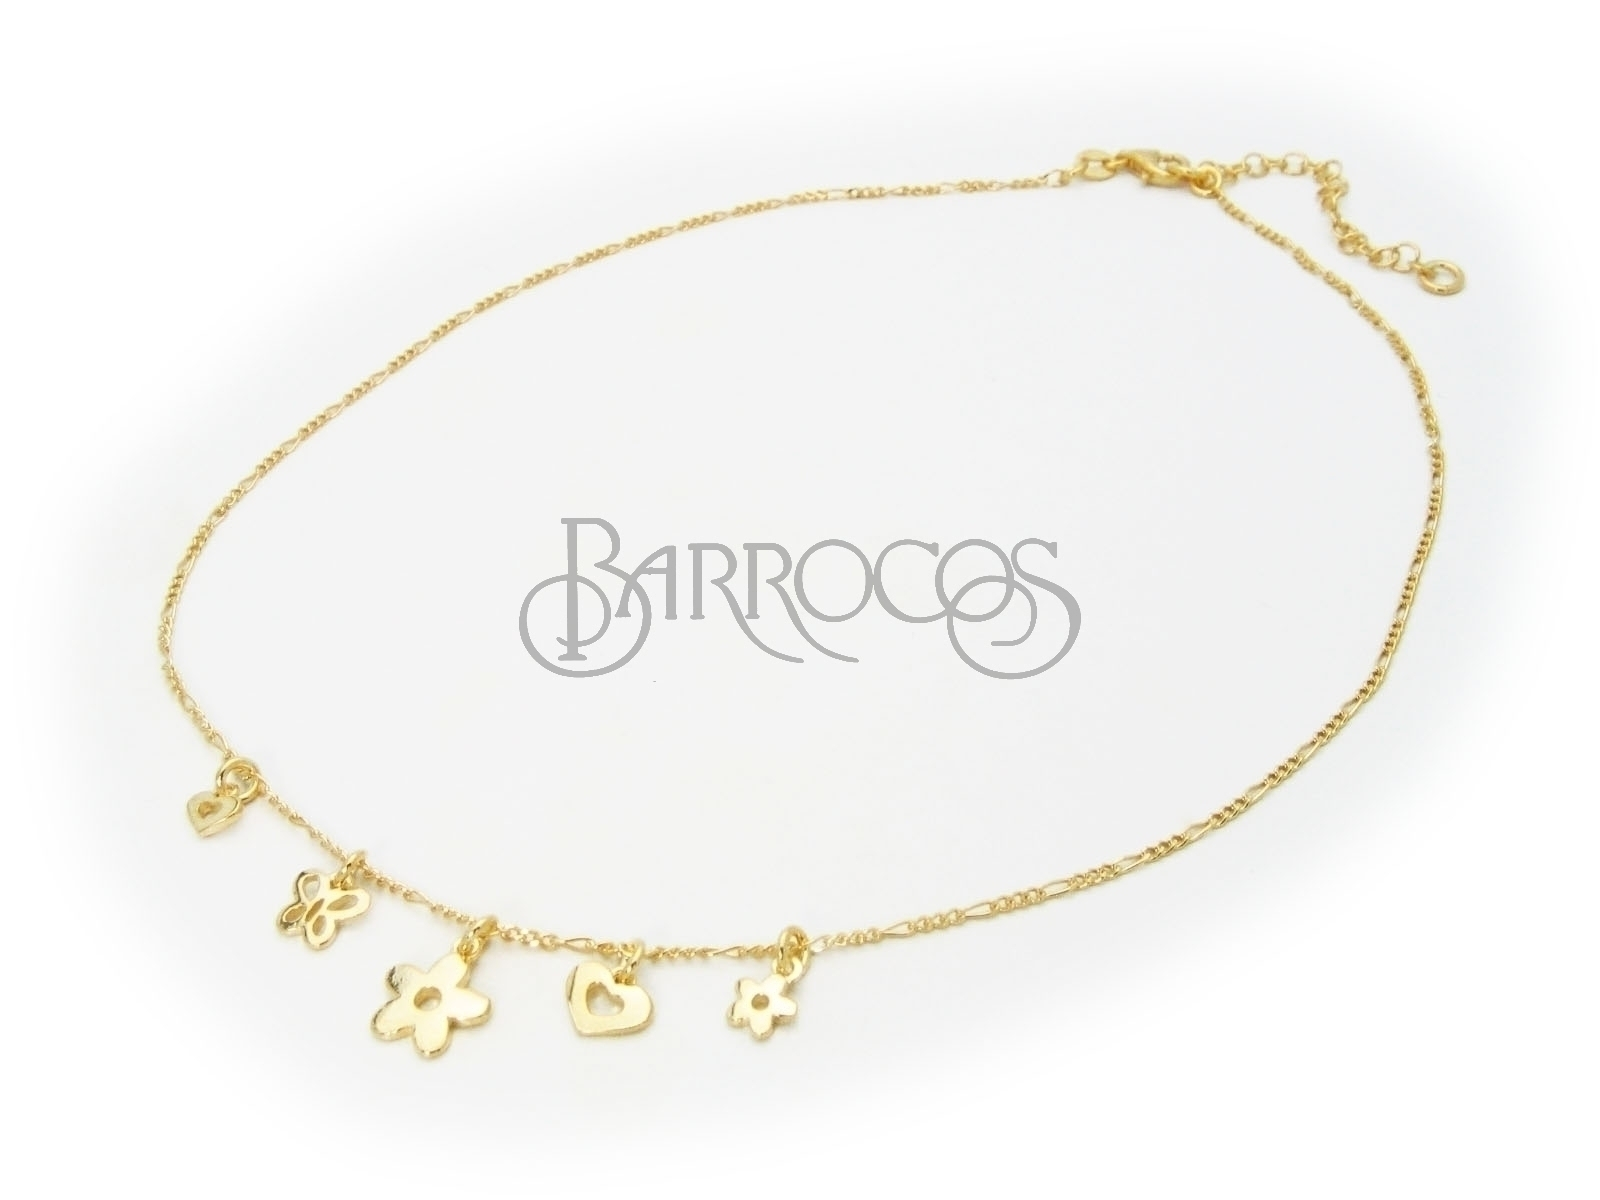 "Beckids Flowers Butterflies & Hearts Charms Necklace in Gold Plated Sterling Silver Sterling Silver 15""+2"""